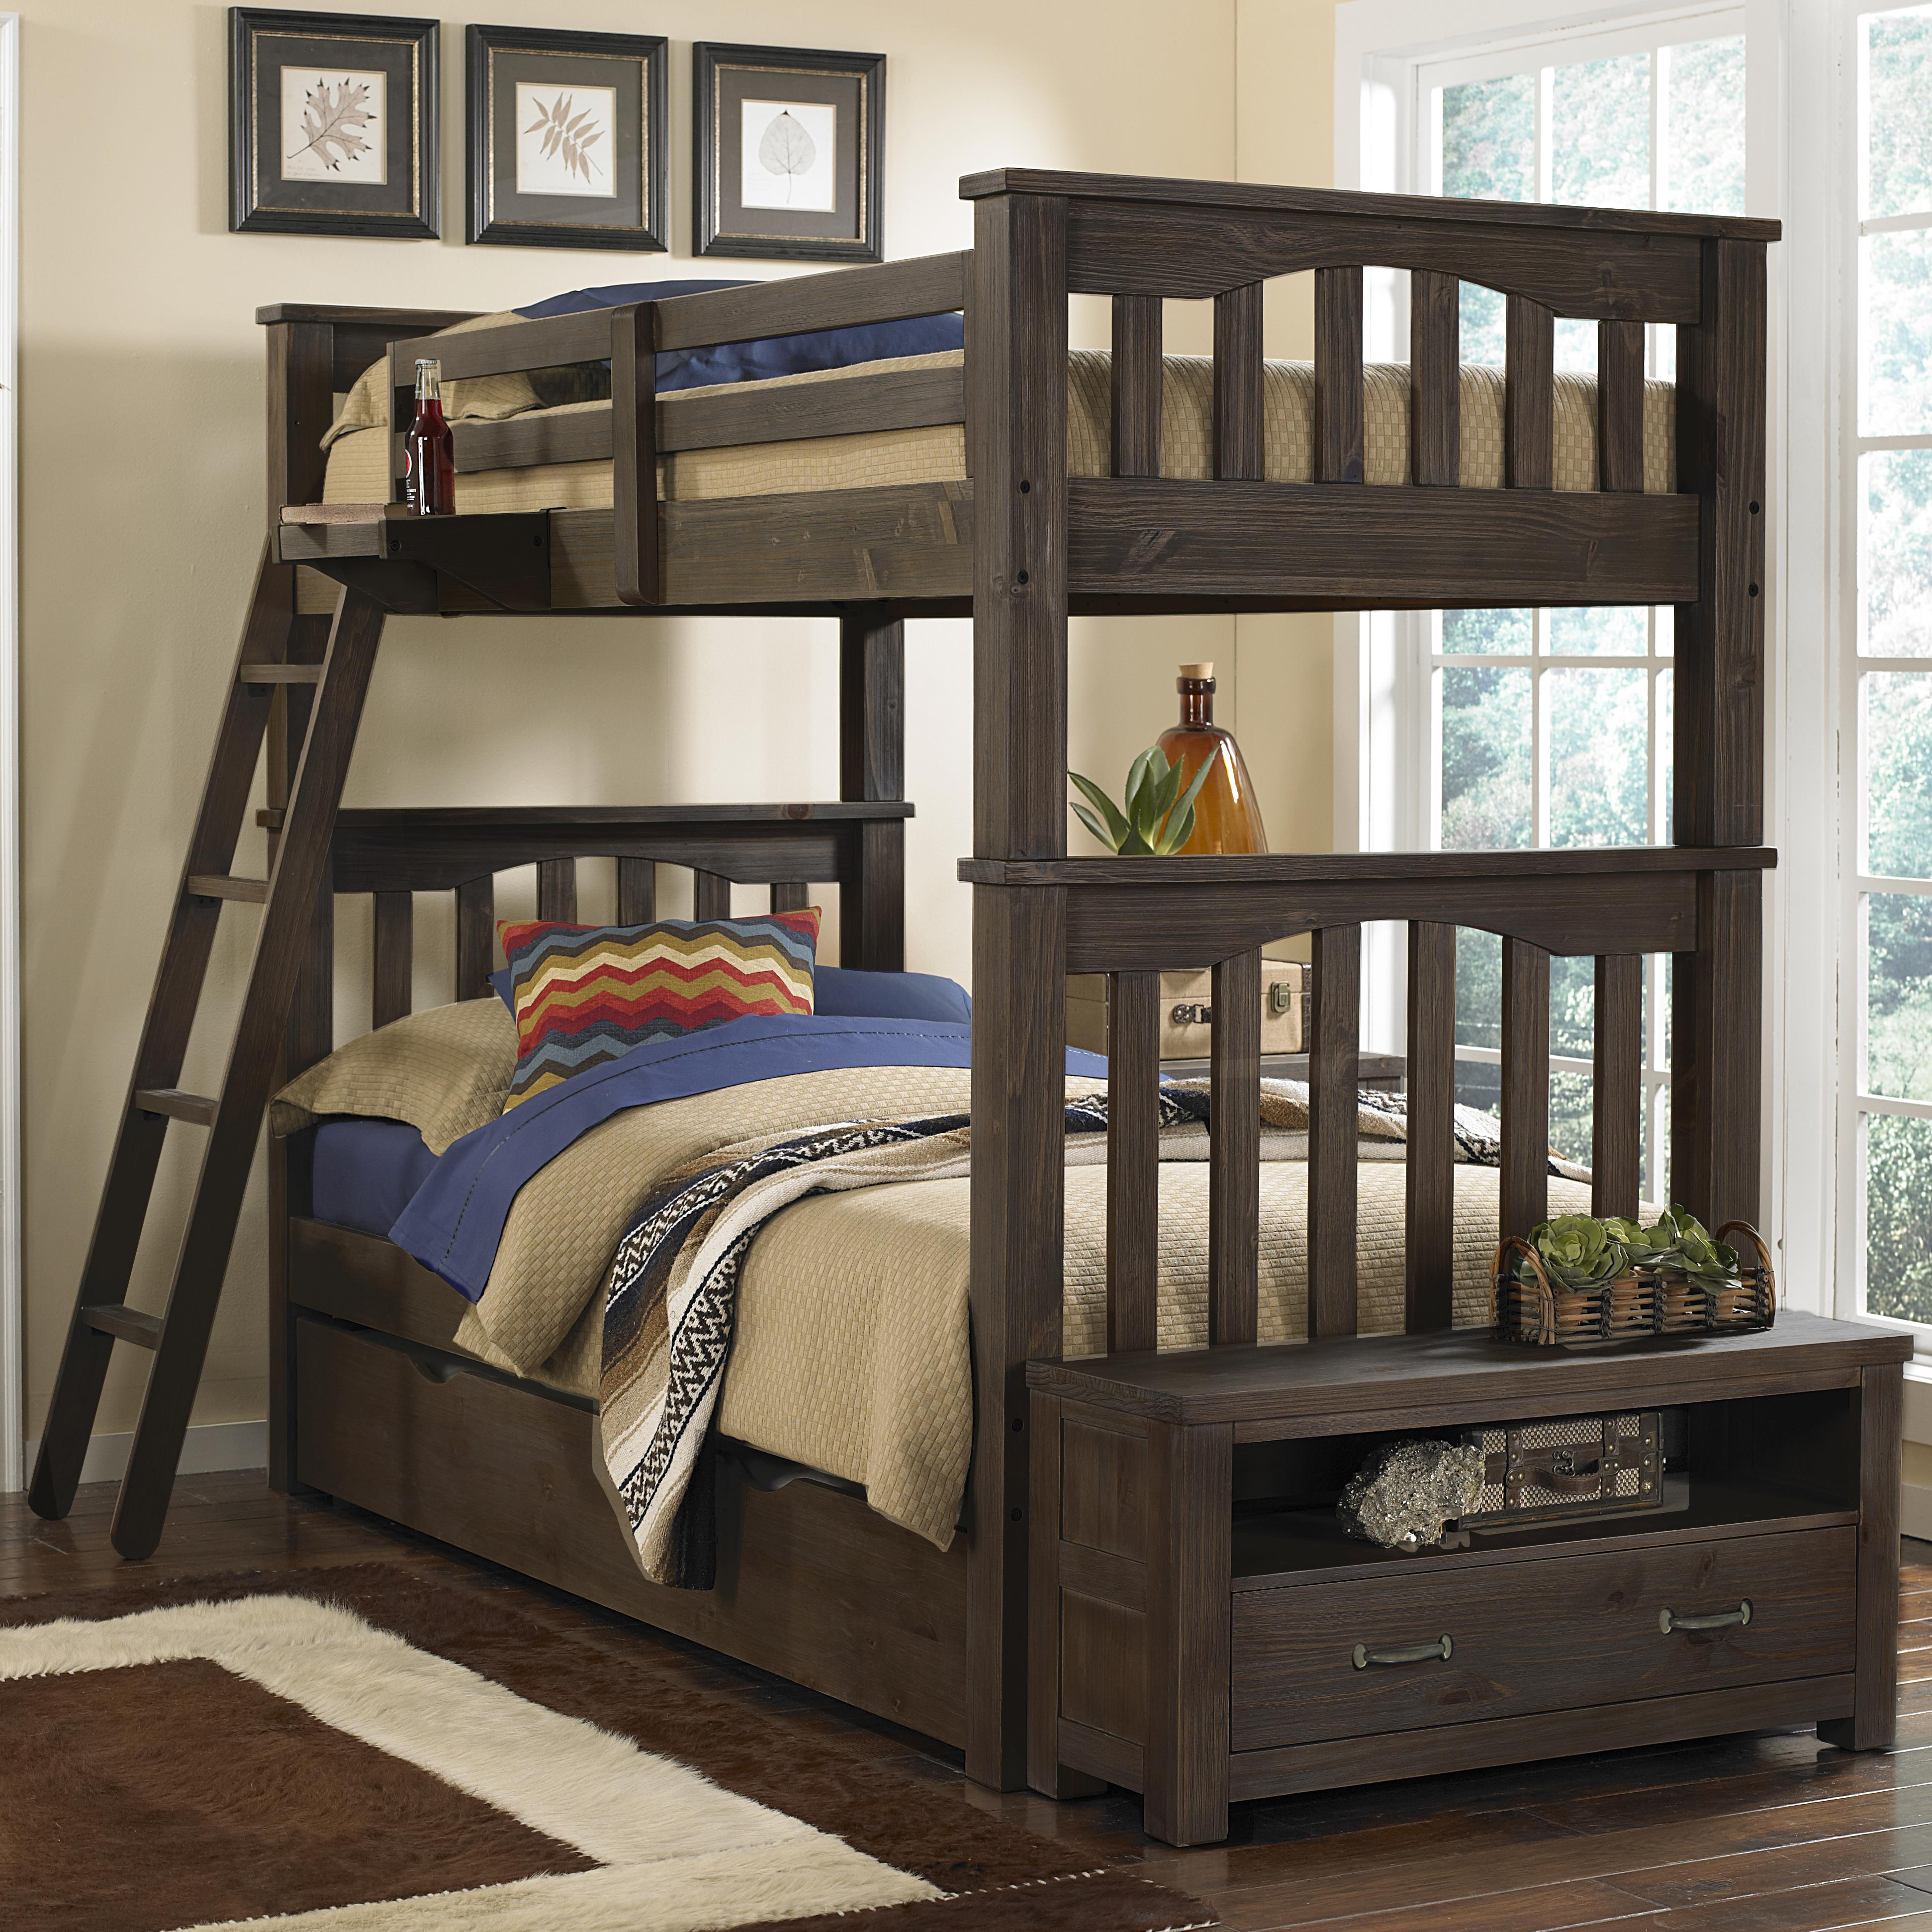 Highlands Harper Twin Over Twin Bunk Bed With Trundle by NE Kids at Stoney Creek Furniture